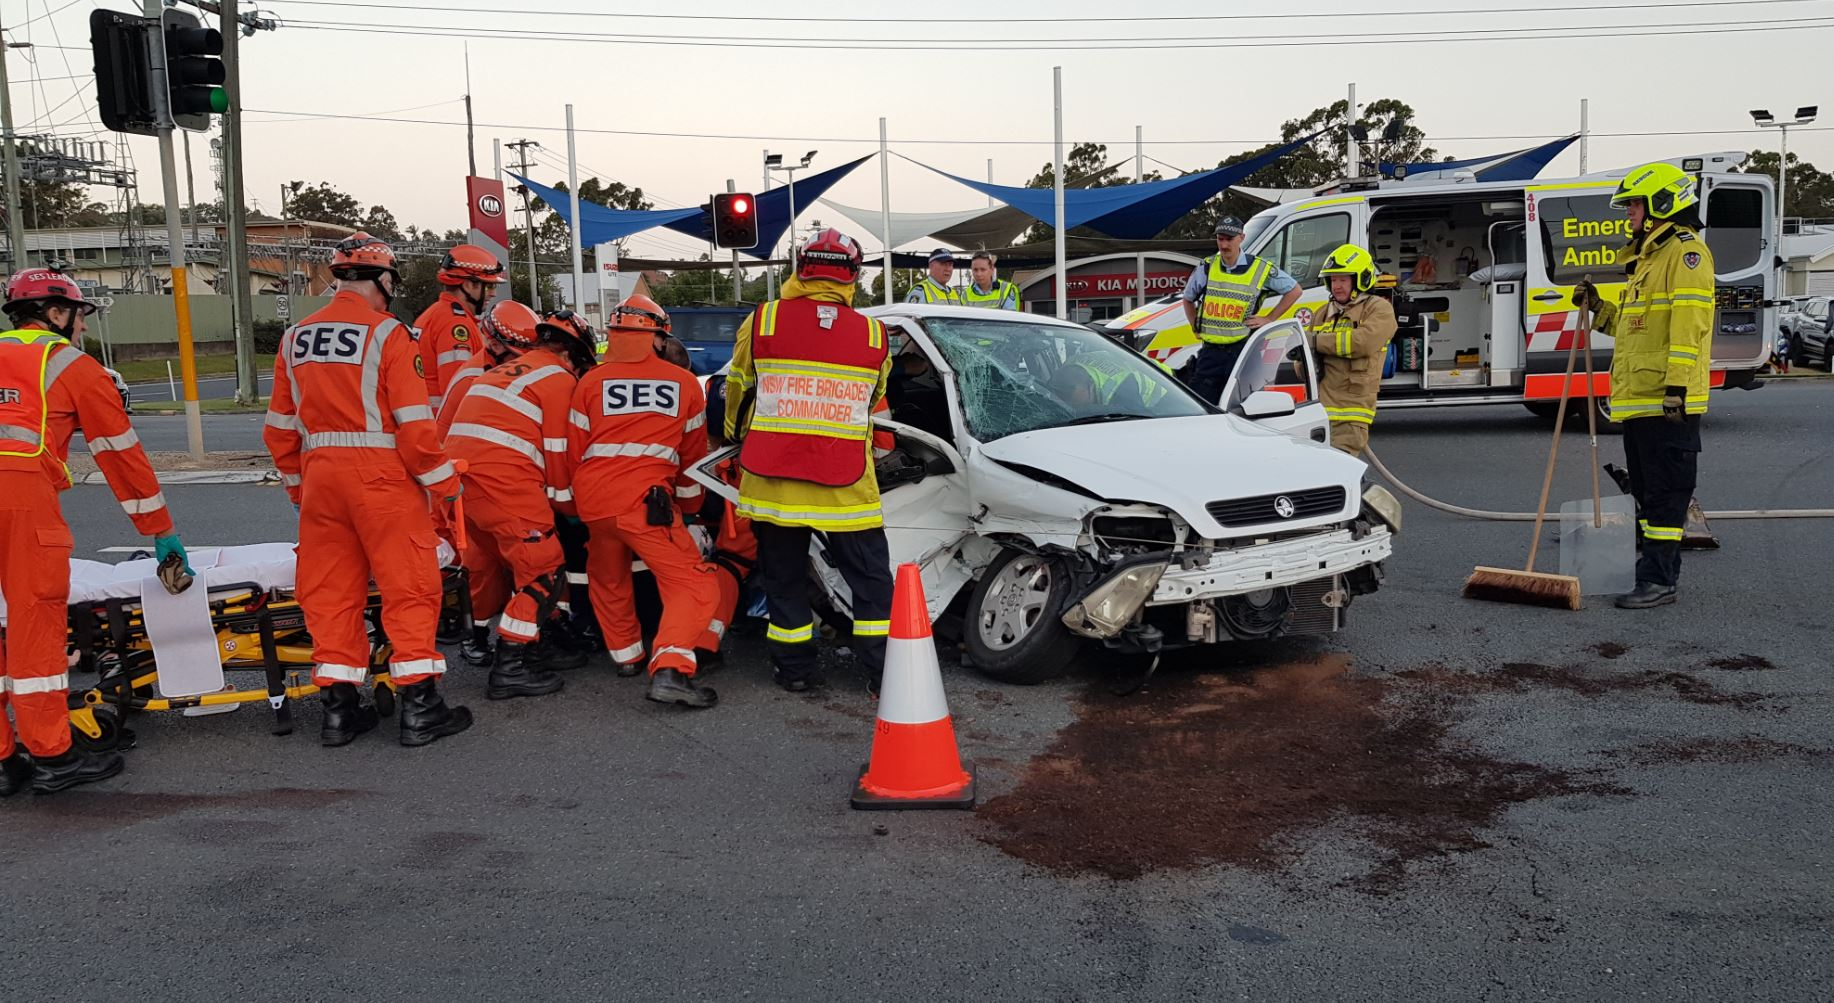 The woman was left unconscious and trapped in a Holden Astra after a crash with a Nissan Navara towing a horse float on the Pacific Highway south of the Coffs Harbour CBD.